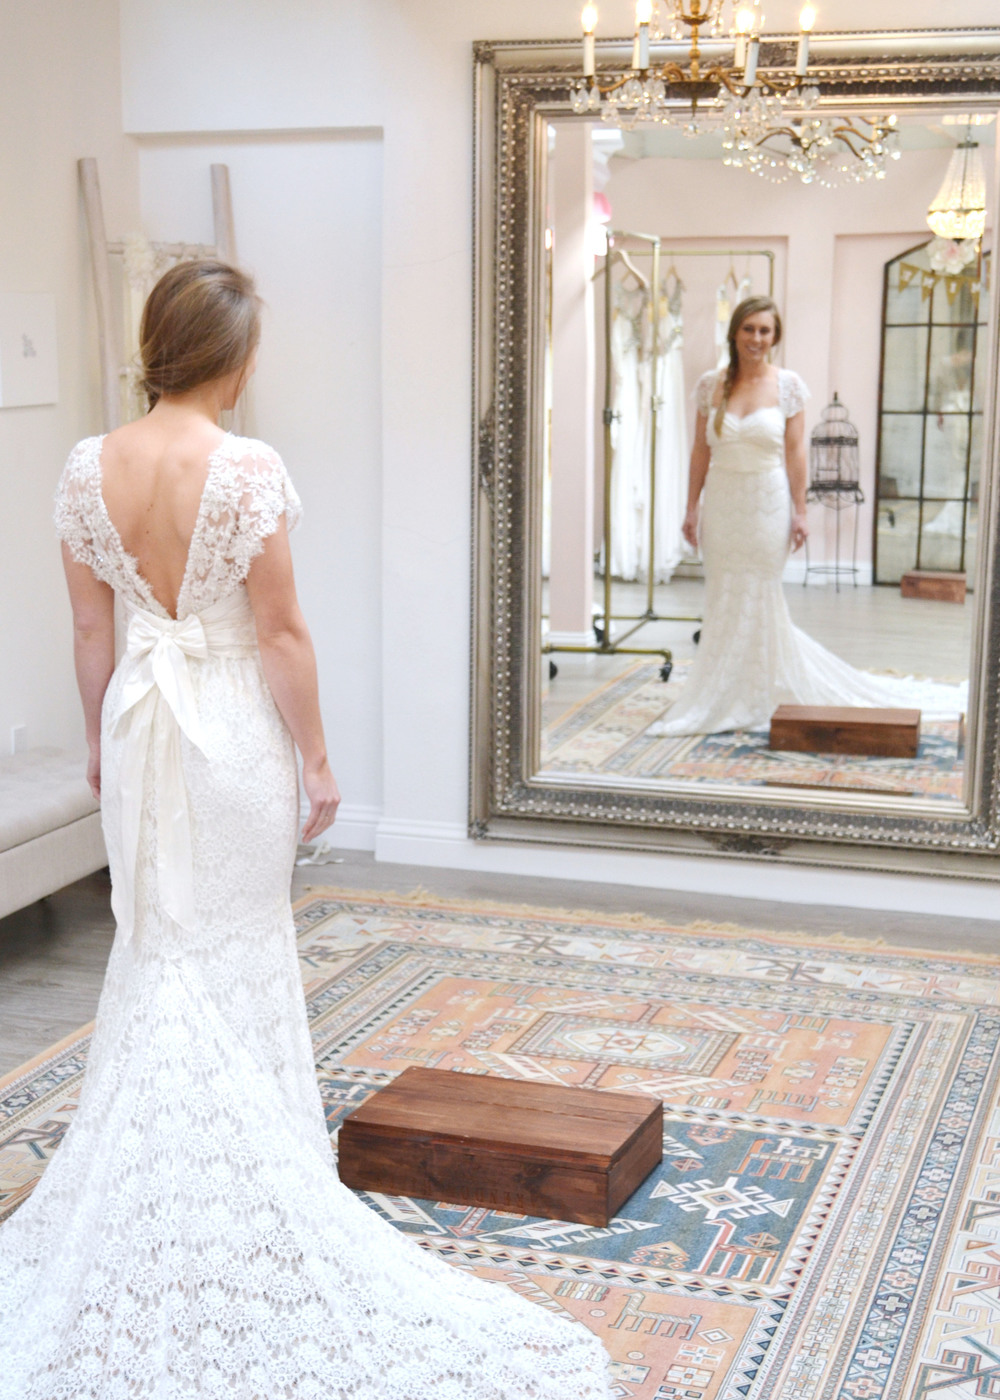 Great tips for out of town wedding dress shopping from Boxwood Avenue on Stylemepretty.com